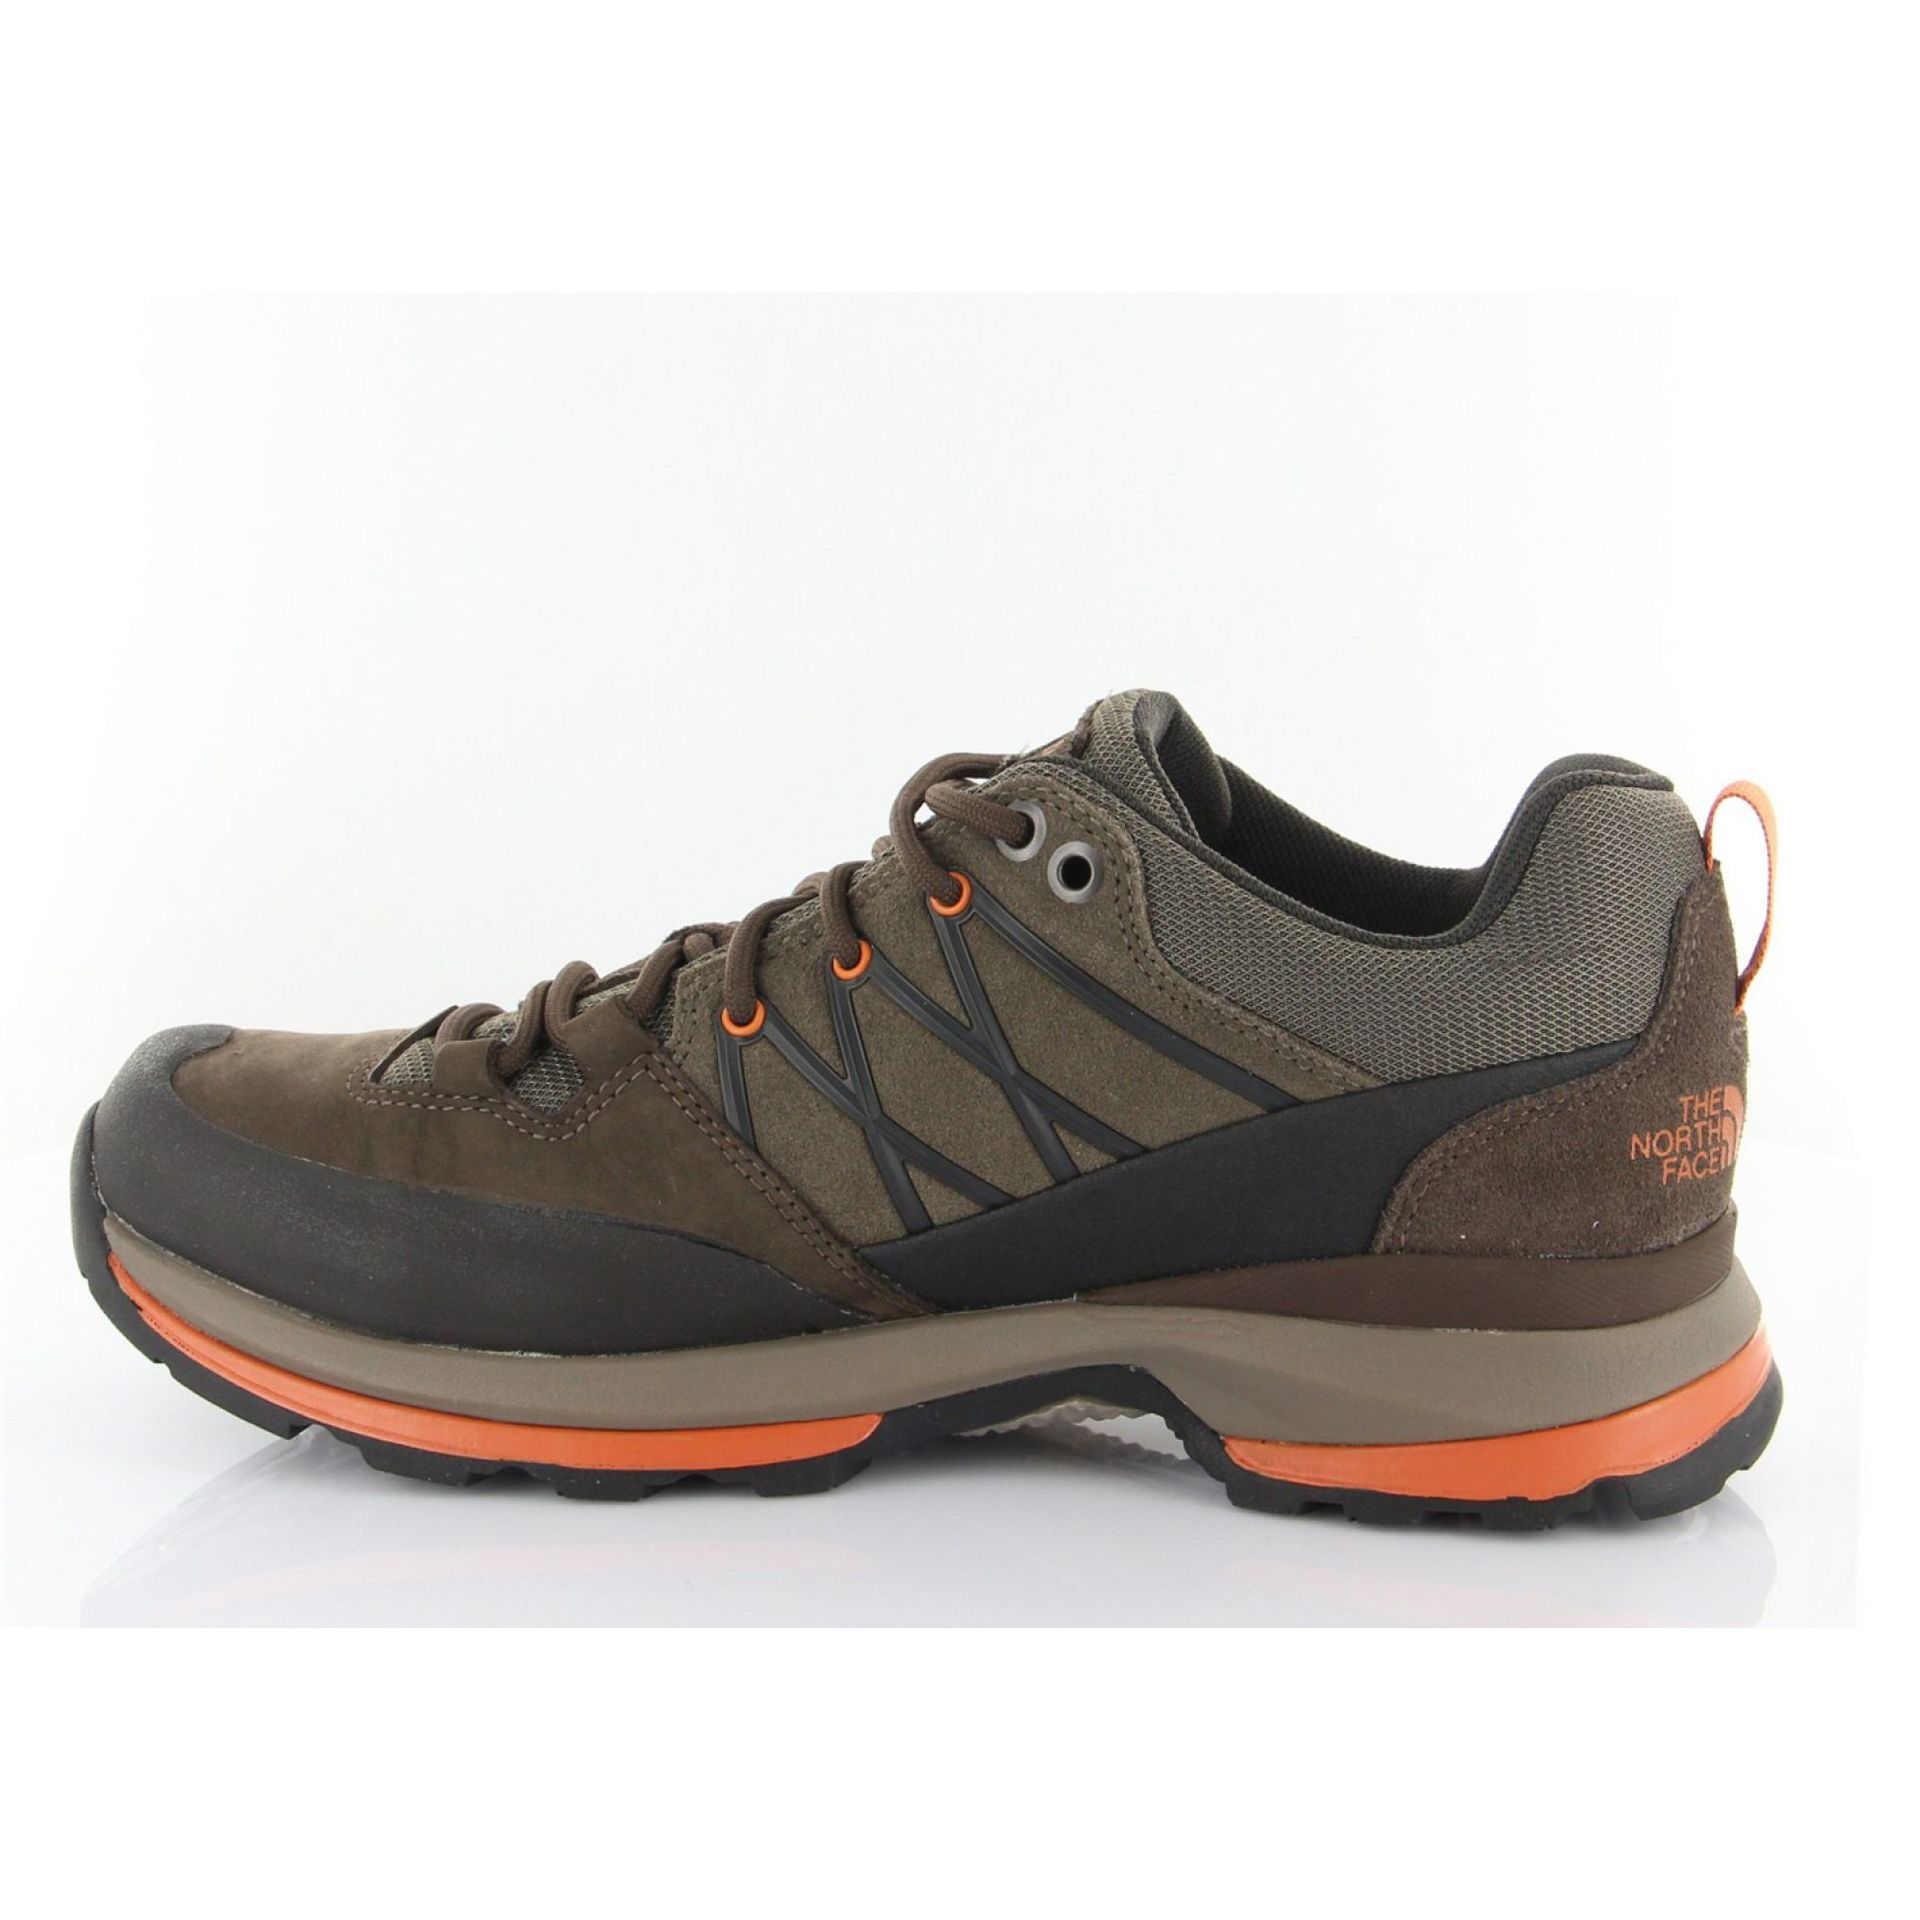 Buty trekkingowe The North Face Wreck GTX